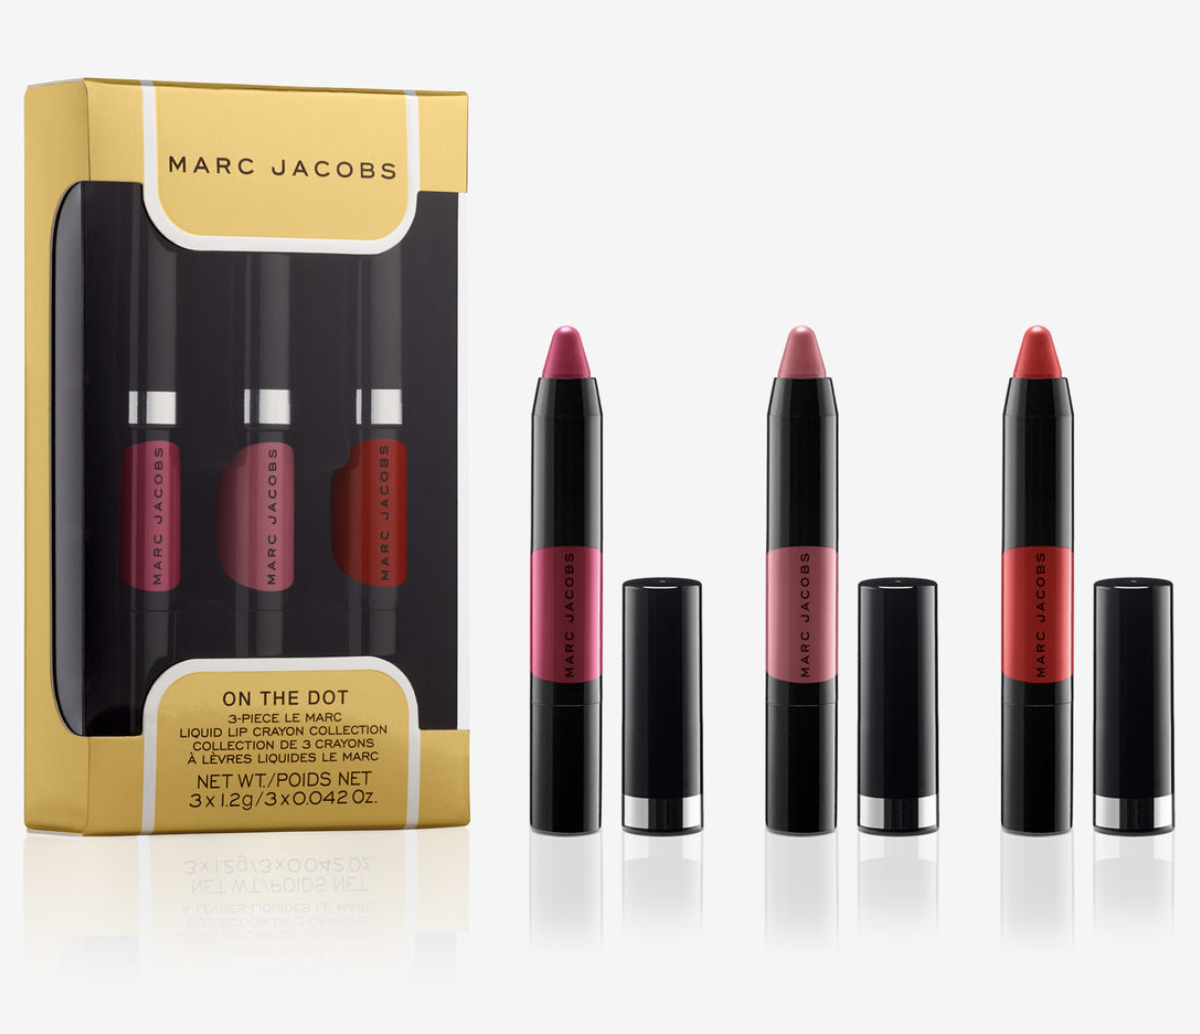 Photo credit: Marc Jacobs Beauty